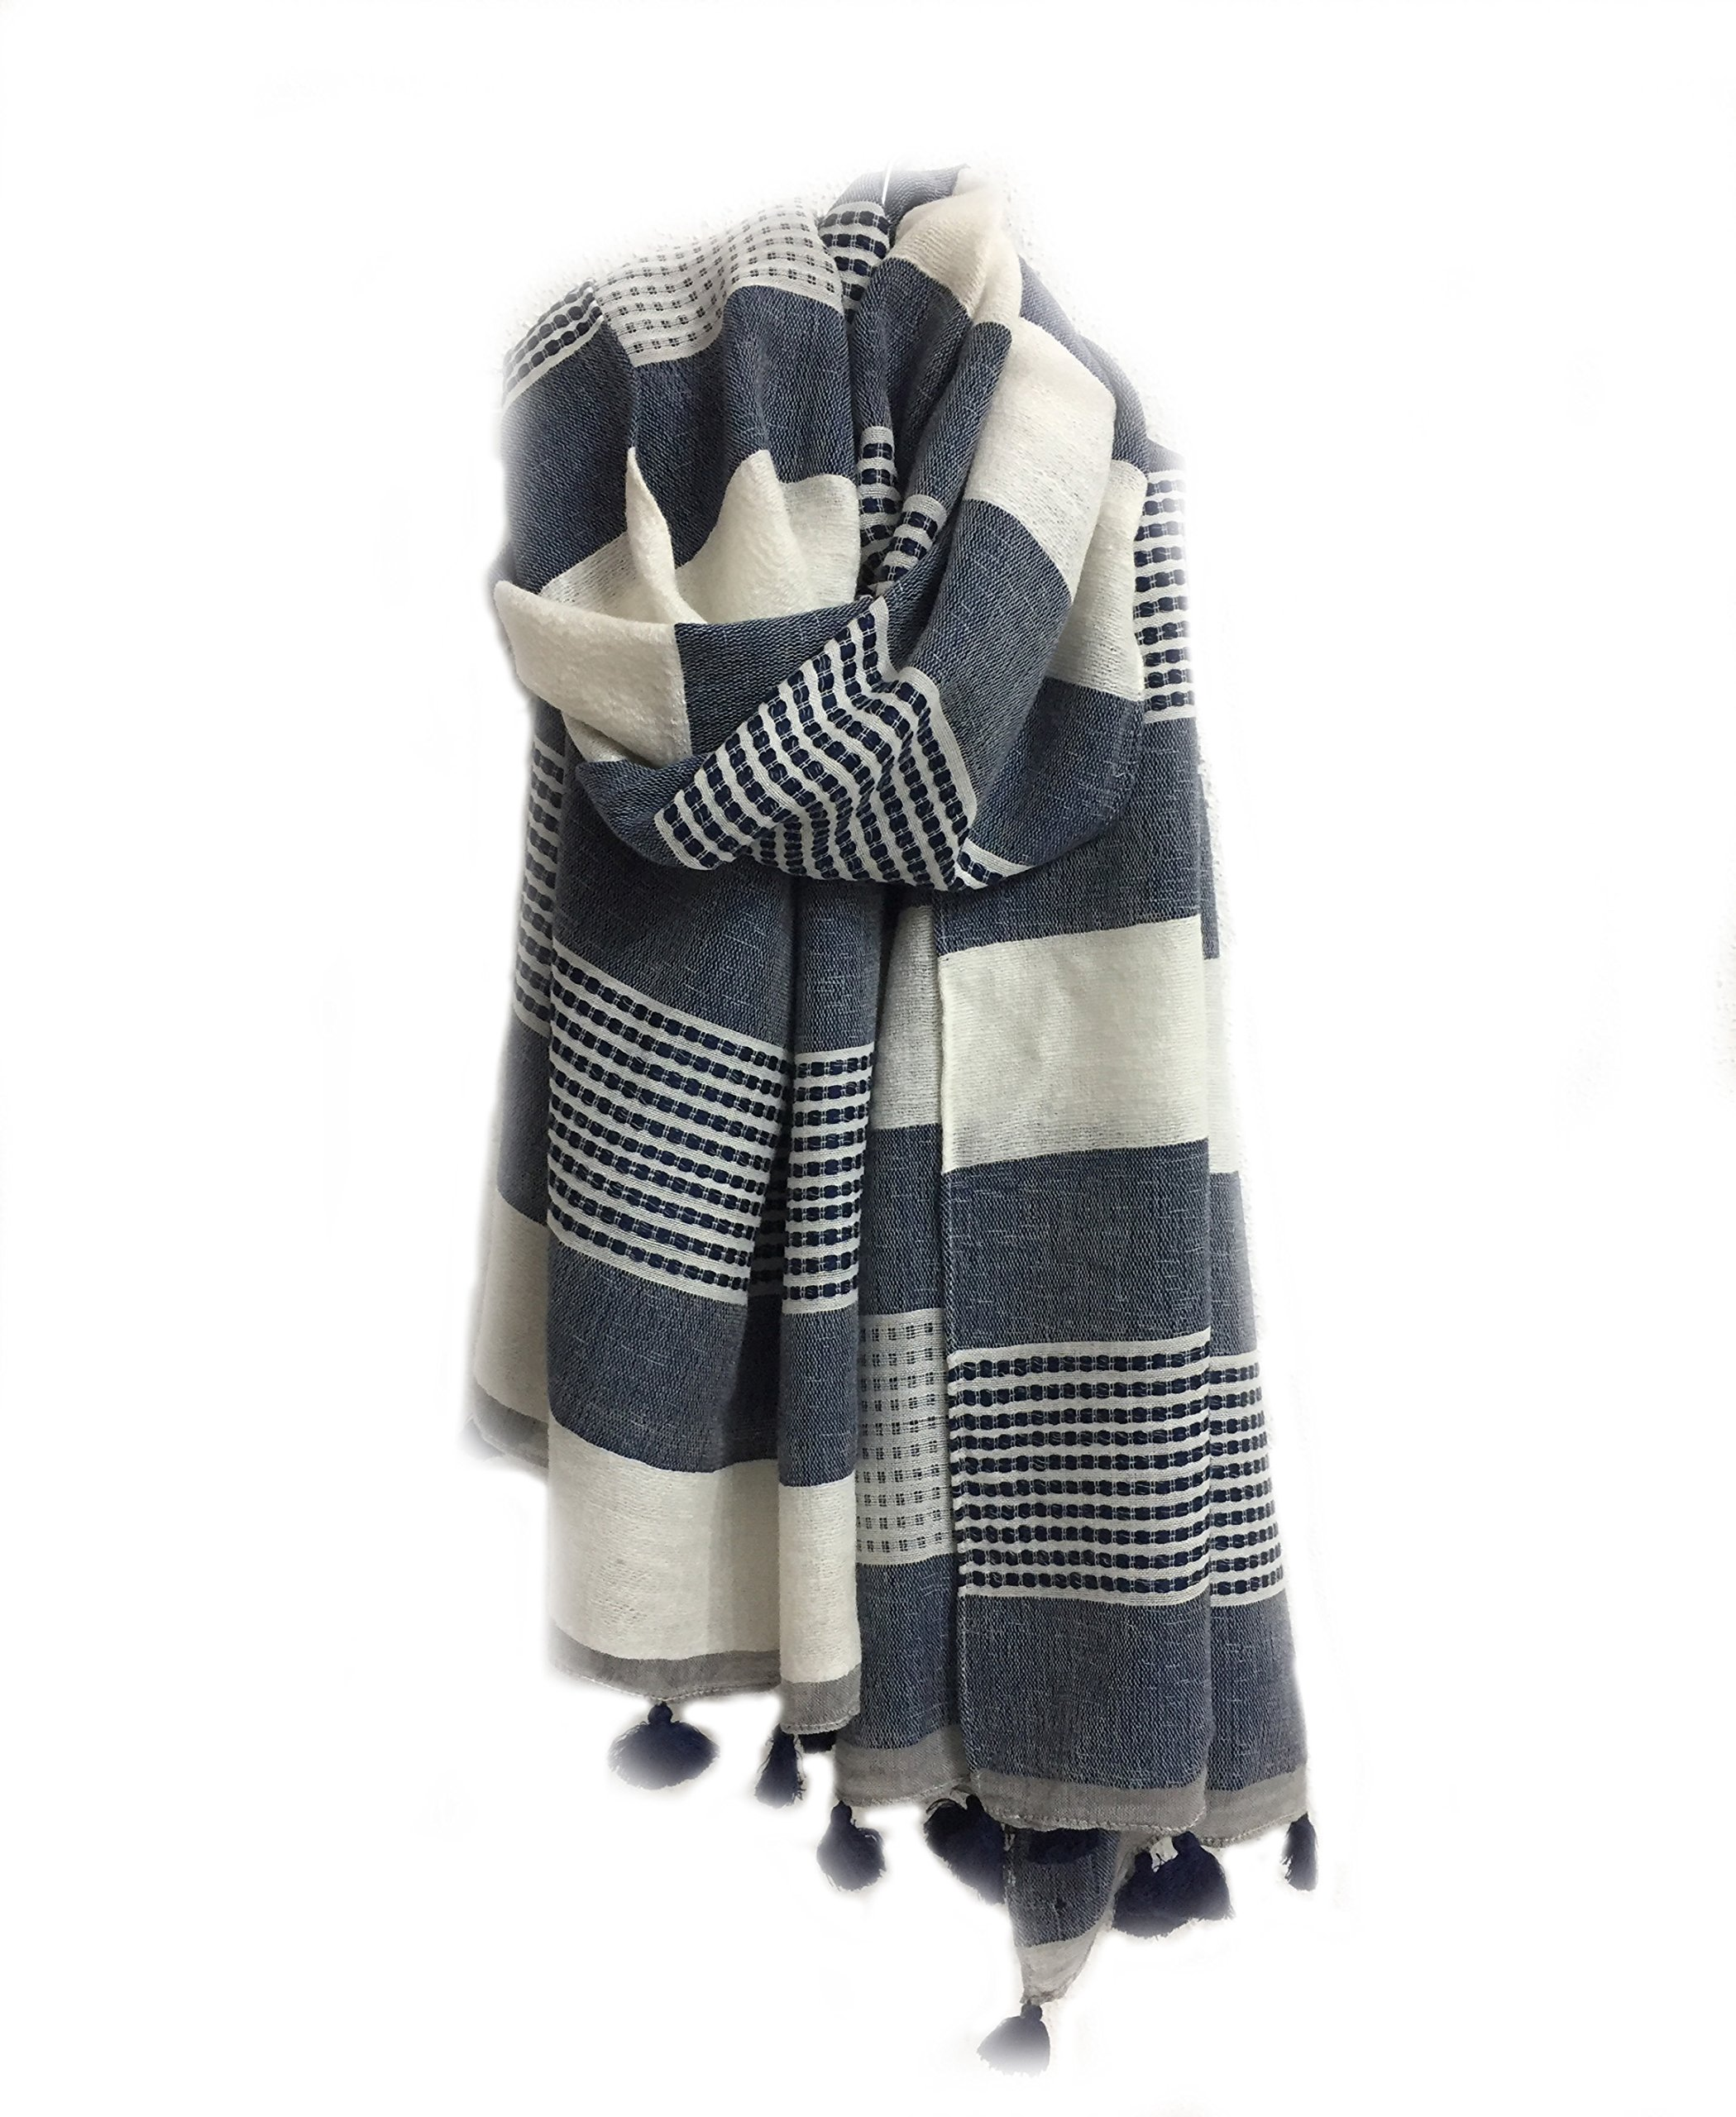 Scarfs for Women - All Weather Stripes Fashion Scarves Best for Summer and Spring Lightweight Soft Scarf shawl for Women and Girls